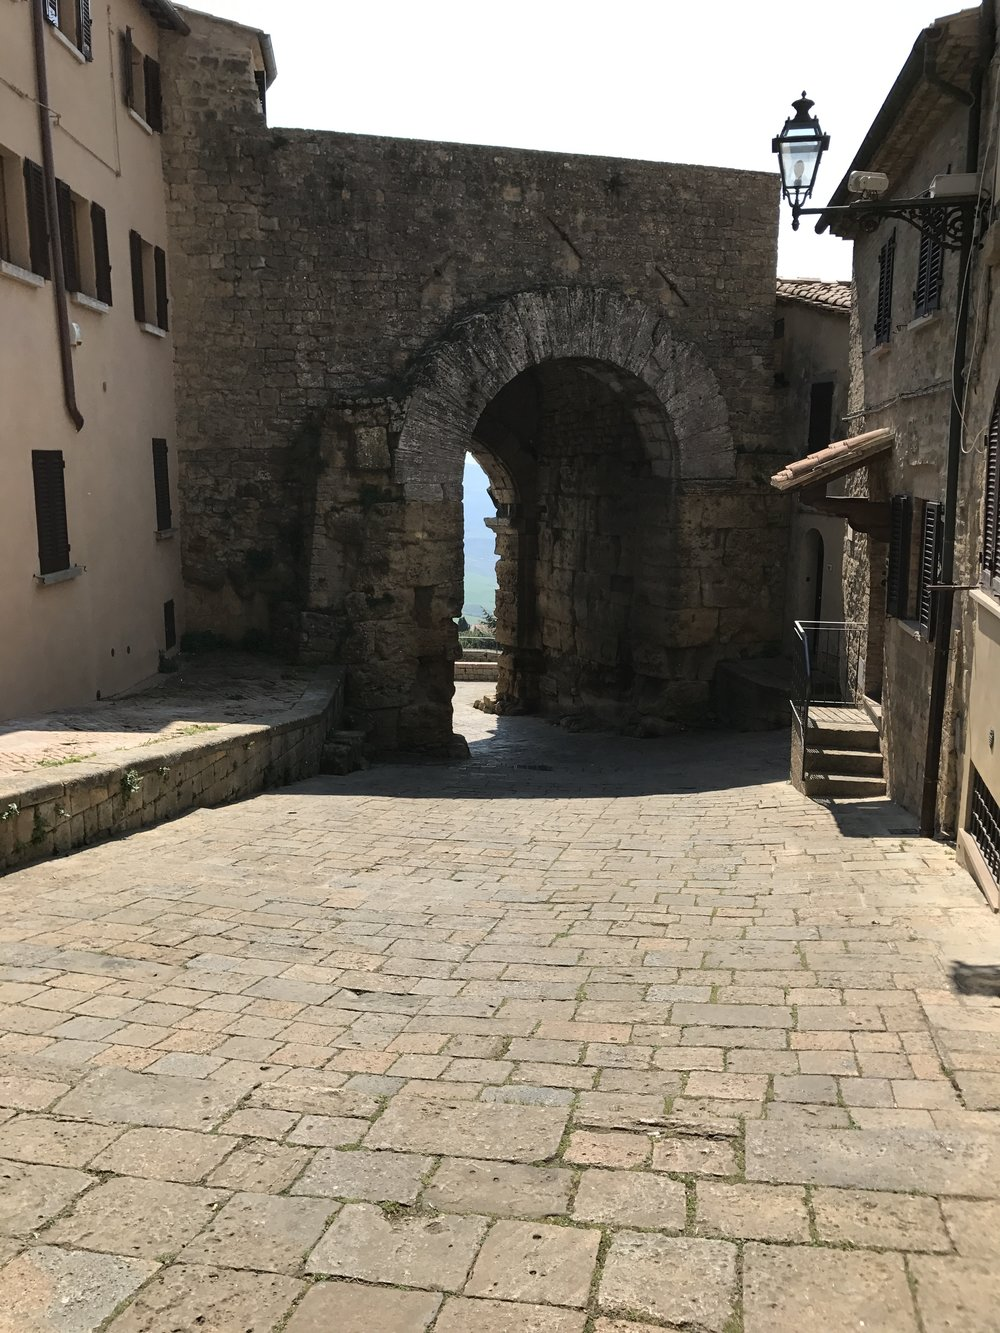 The Etruscan gate in Volterra